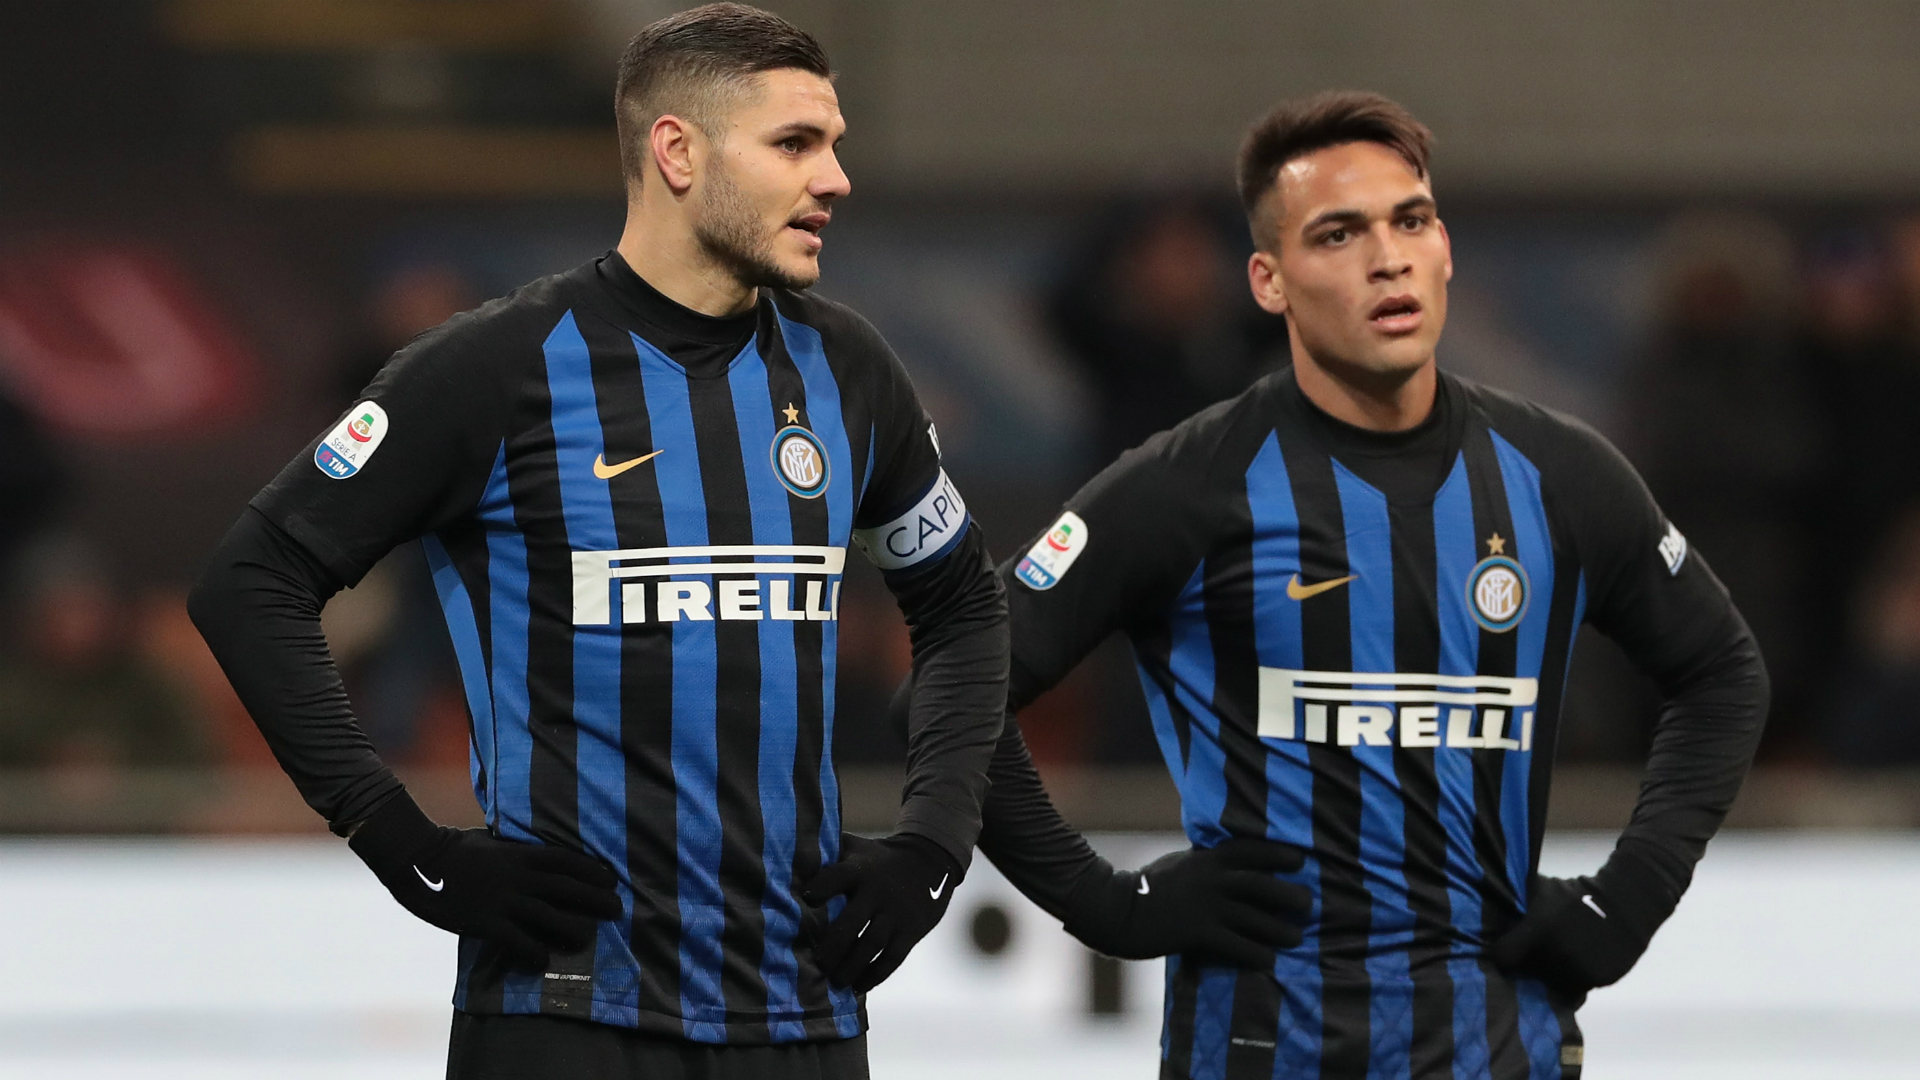 Inter play better with Lautaro, says Pirlo